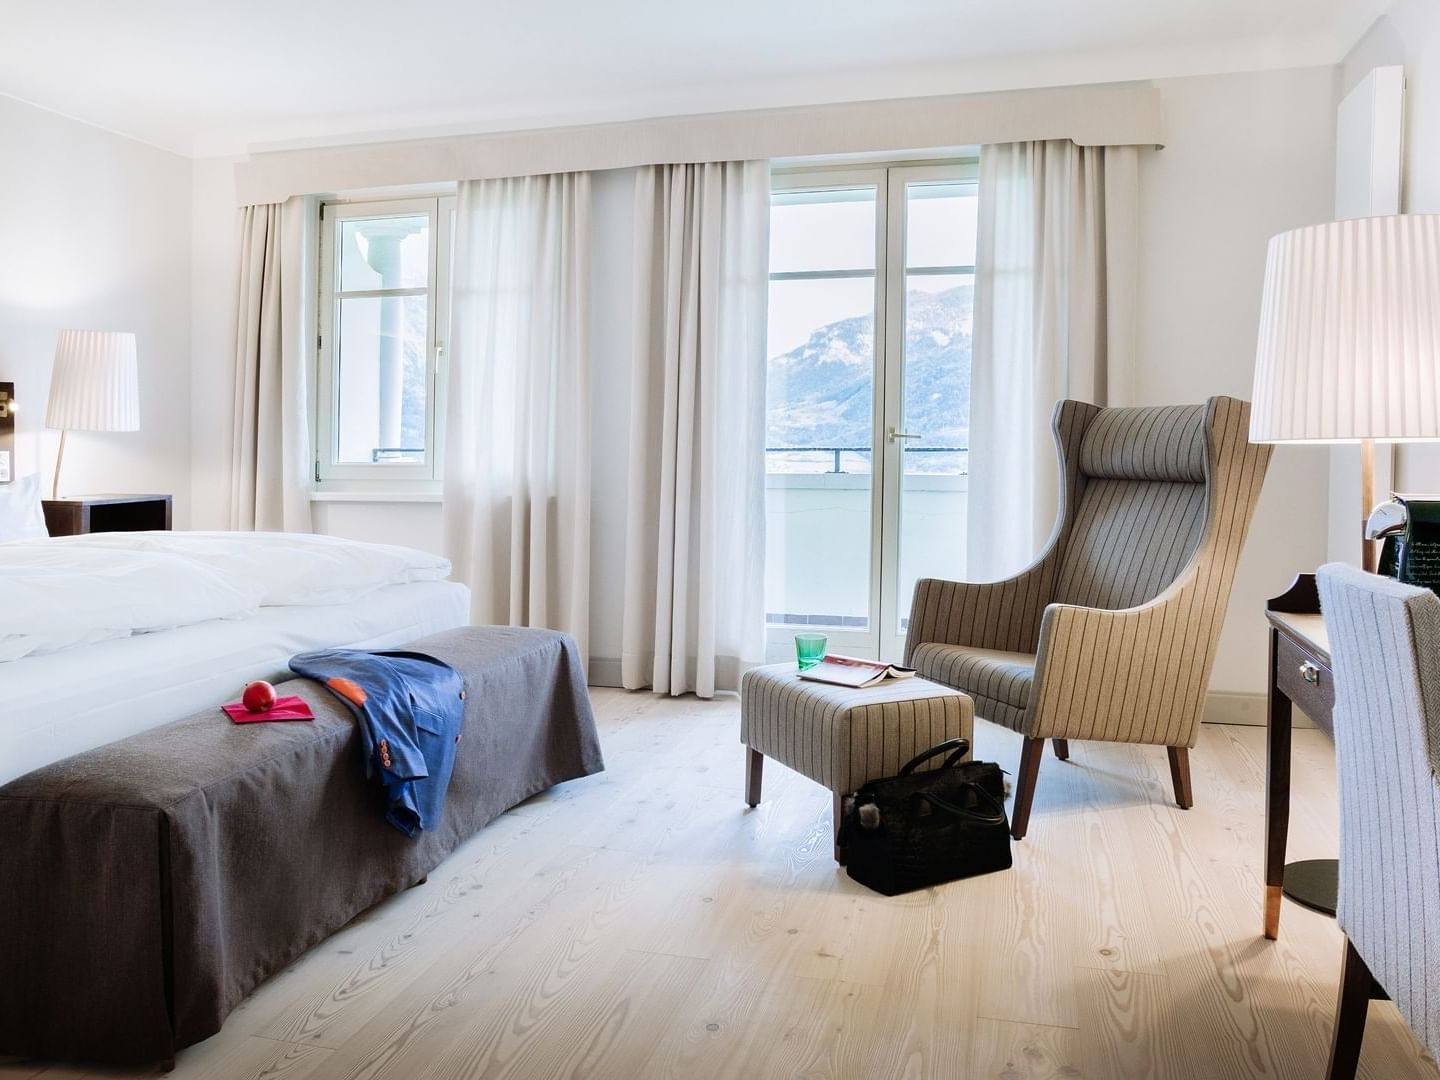 Double Room Deluxe with Balcony at Schloss Pichlarn Hotel